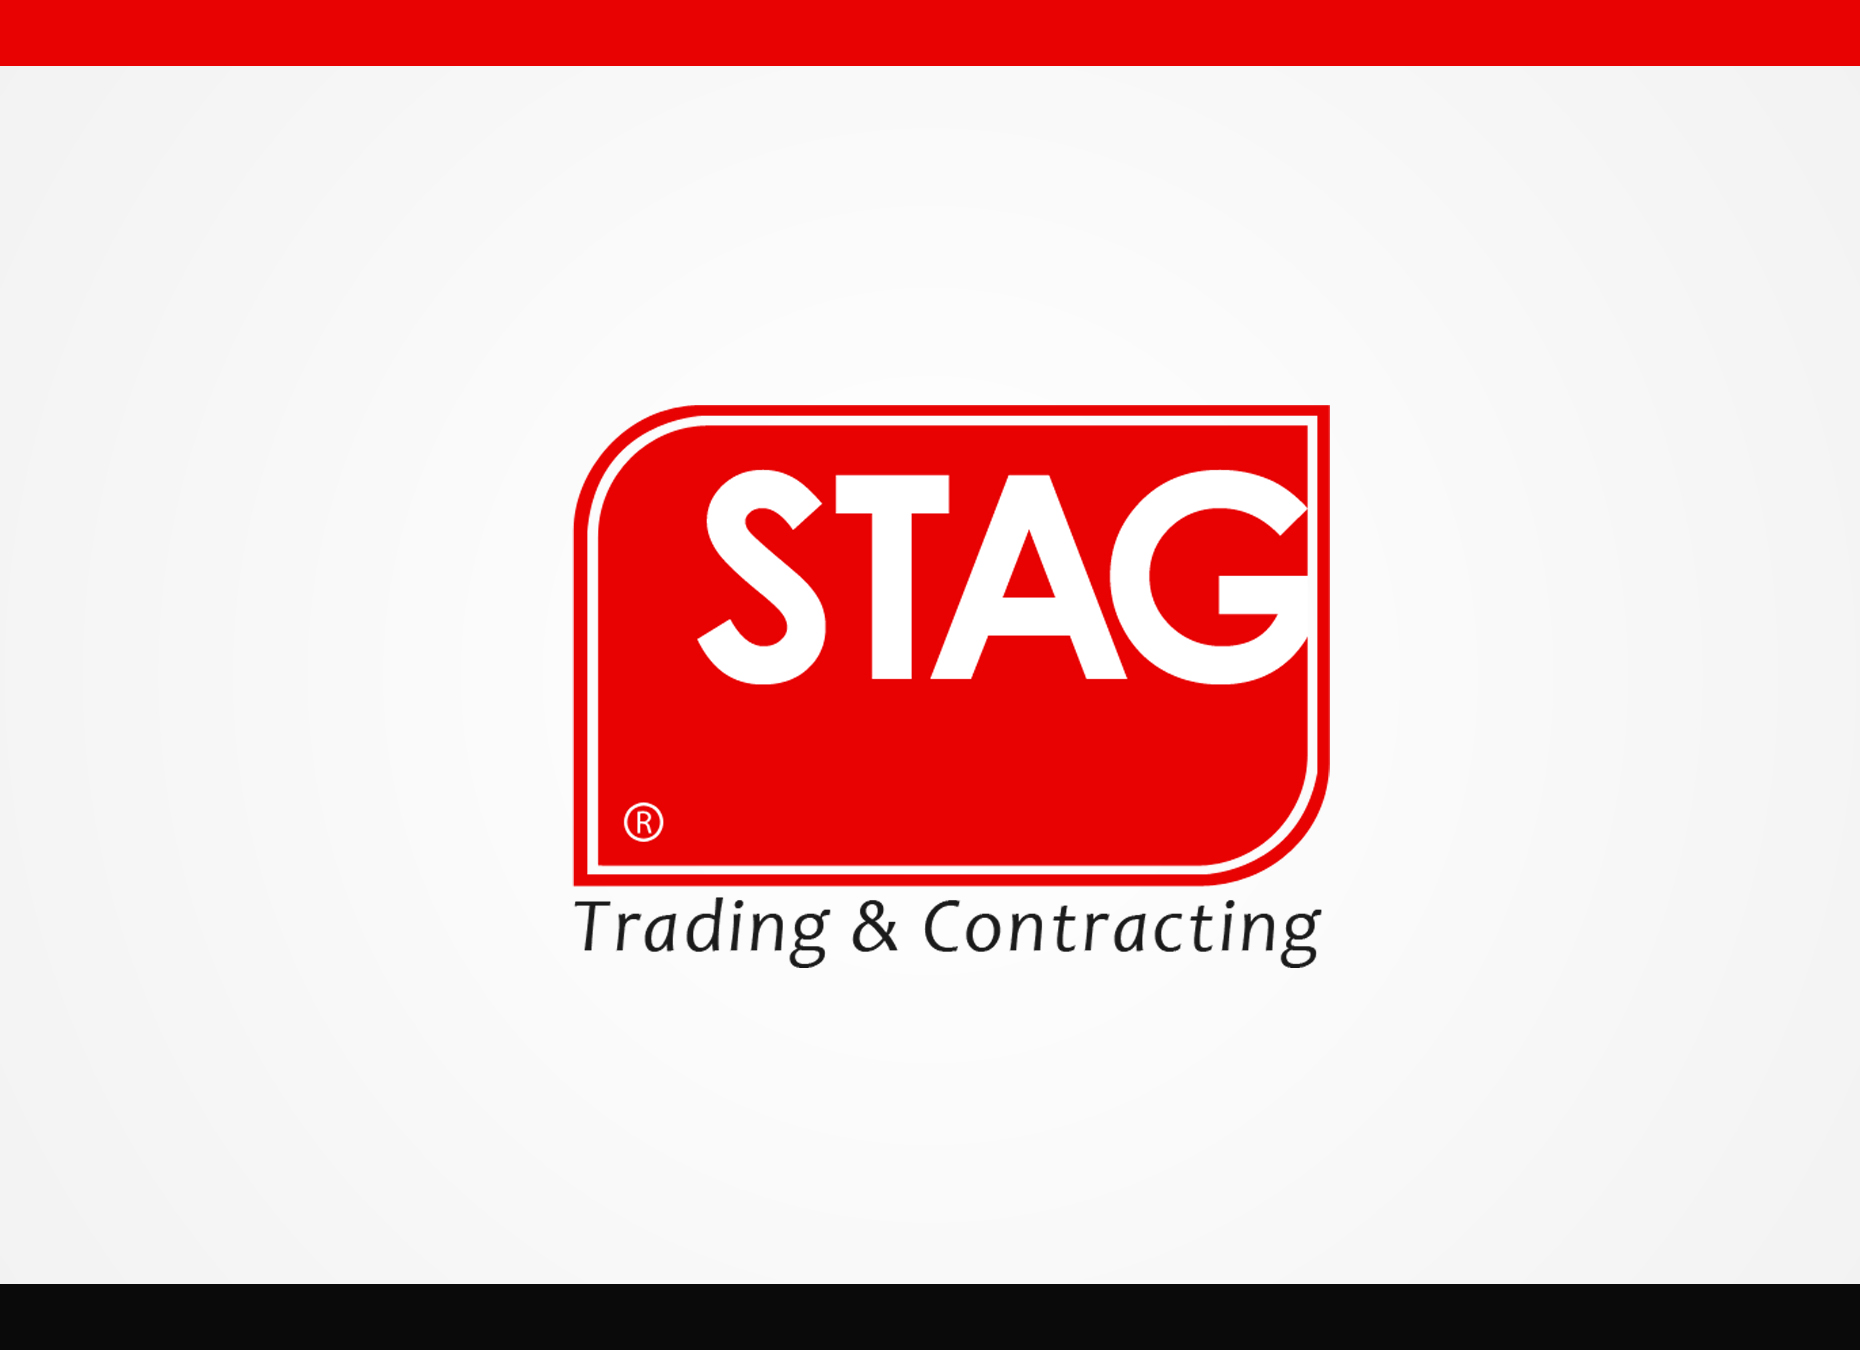 Logo Design by omARTist - Entry No. 12 in the Logo Design Contest Captivating Logo Design for STAG Trading & Contracting.